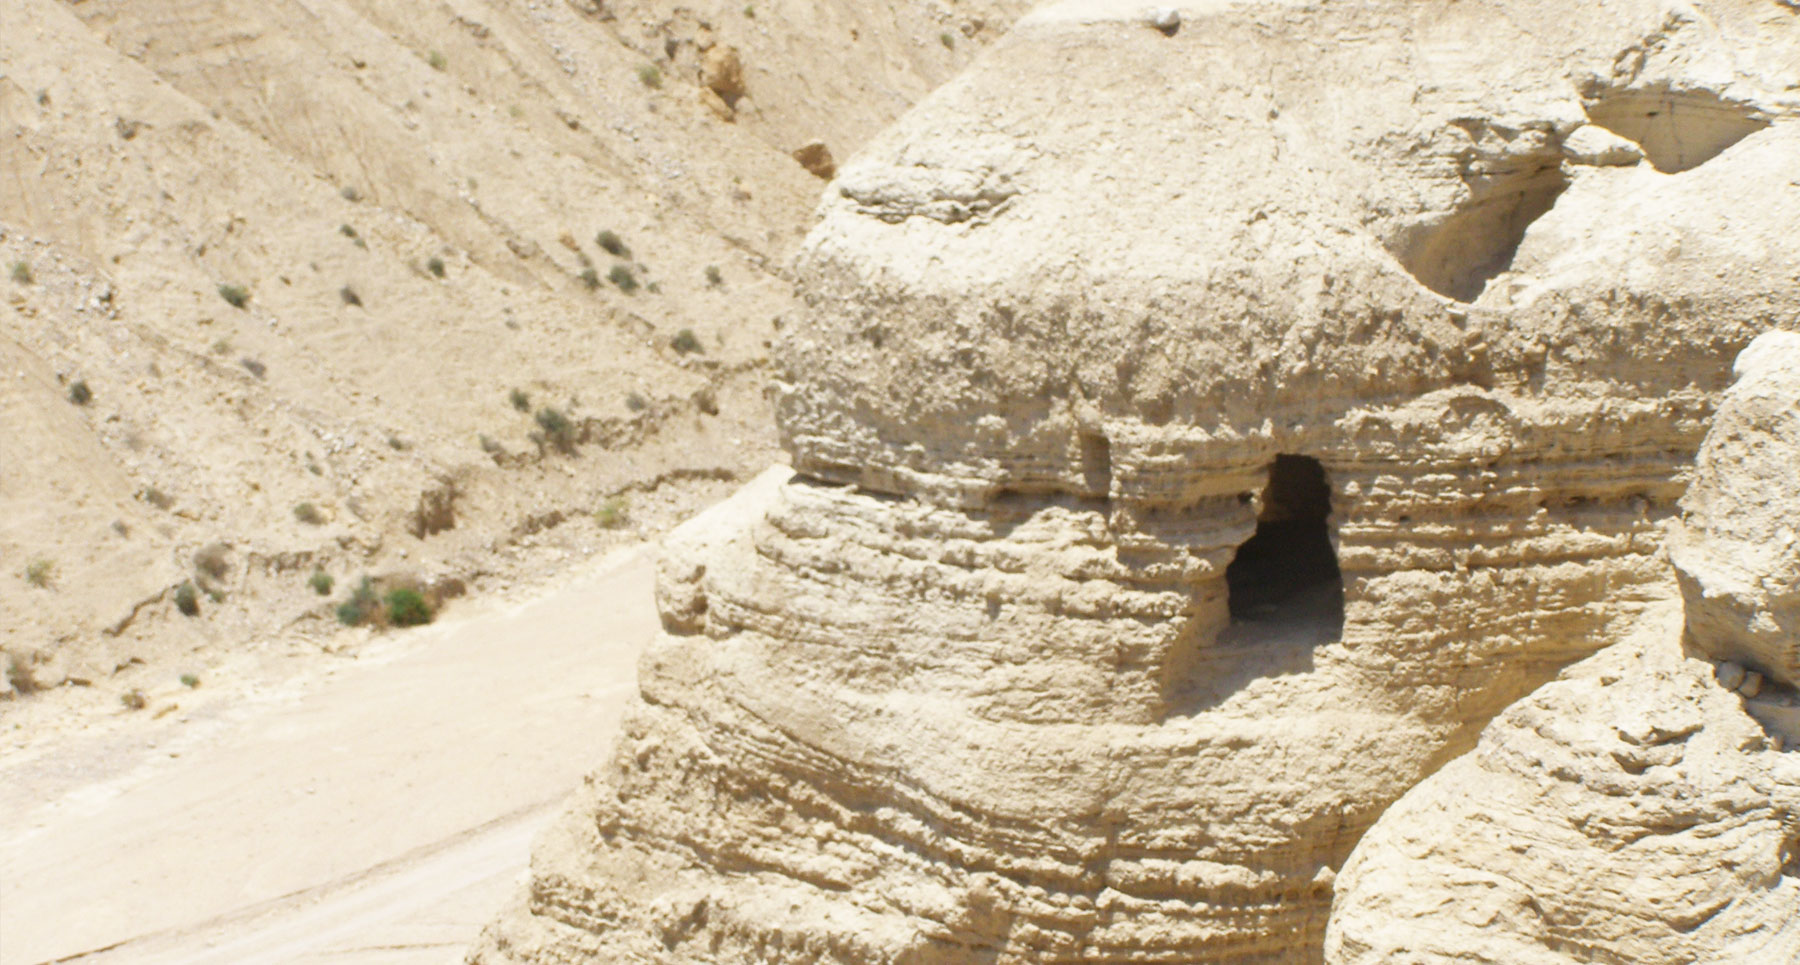 Qumran cave 4 (below the Qumran site)